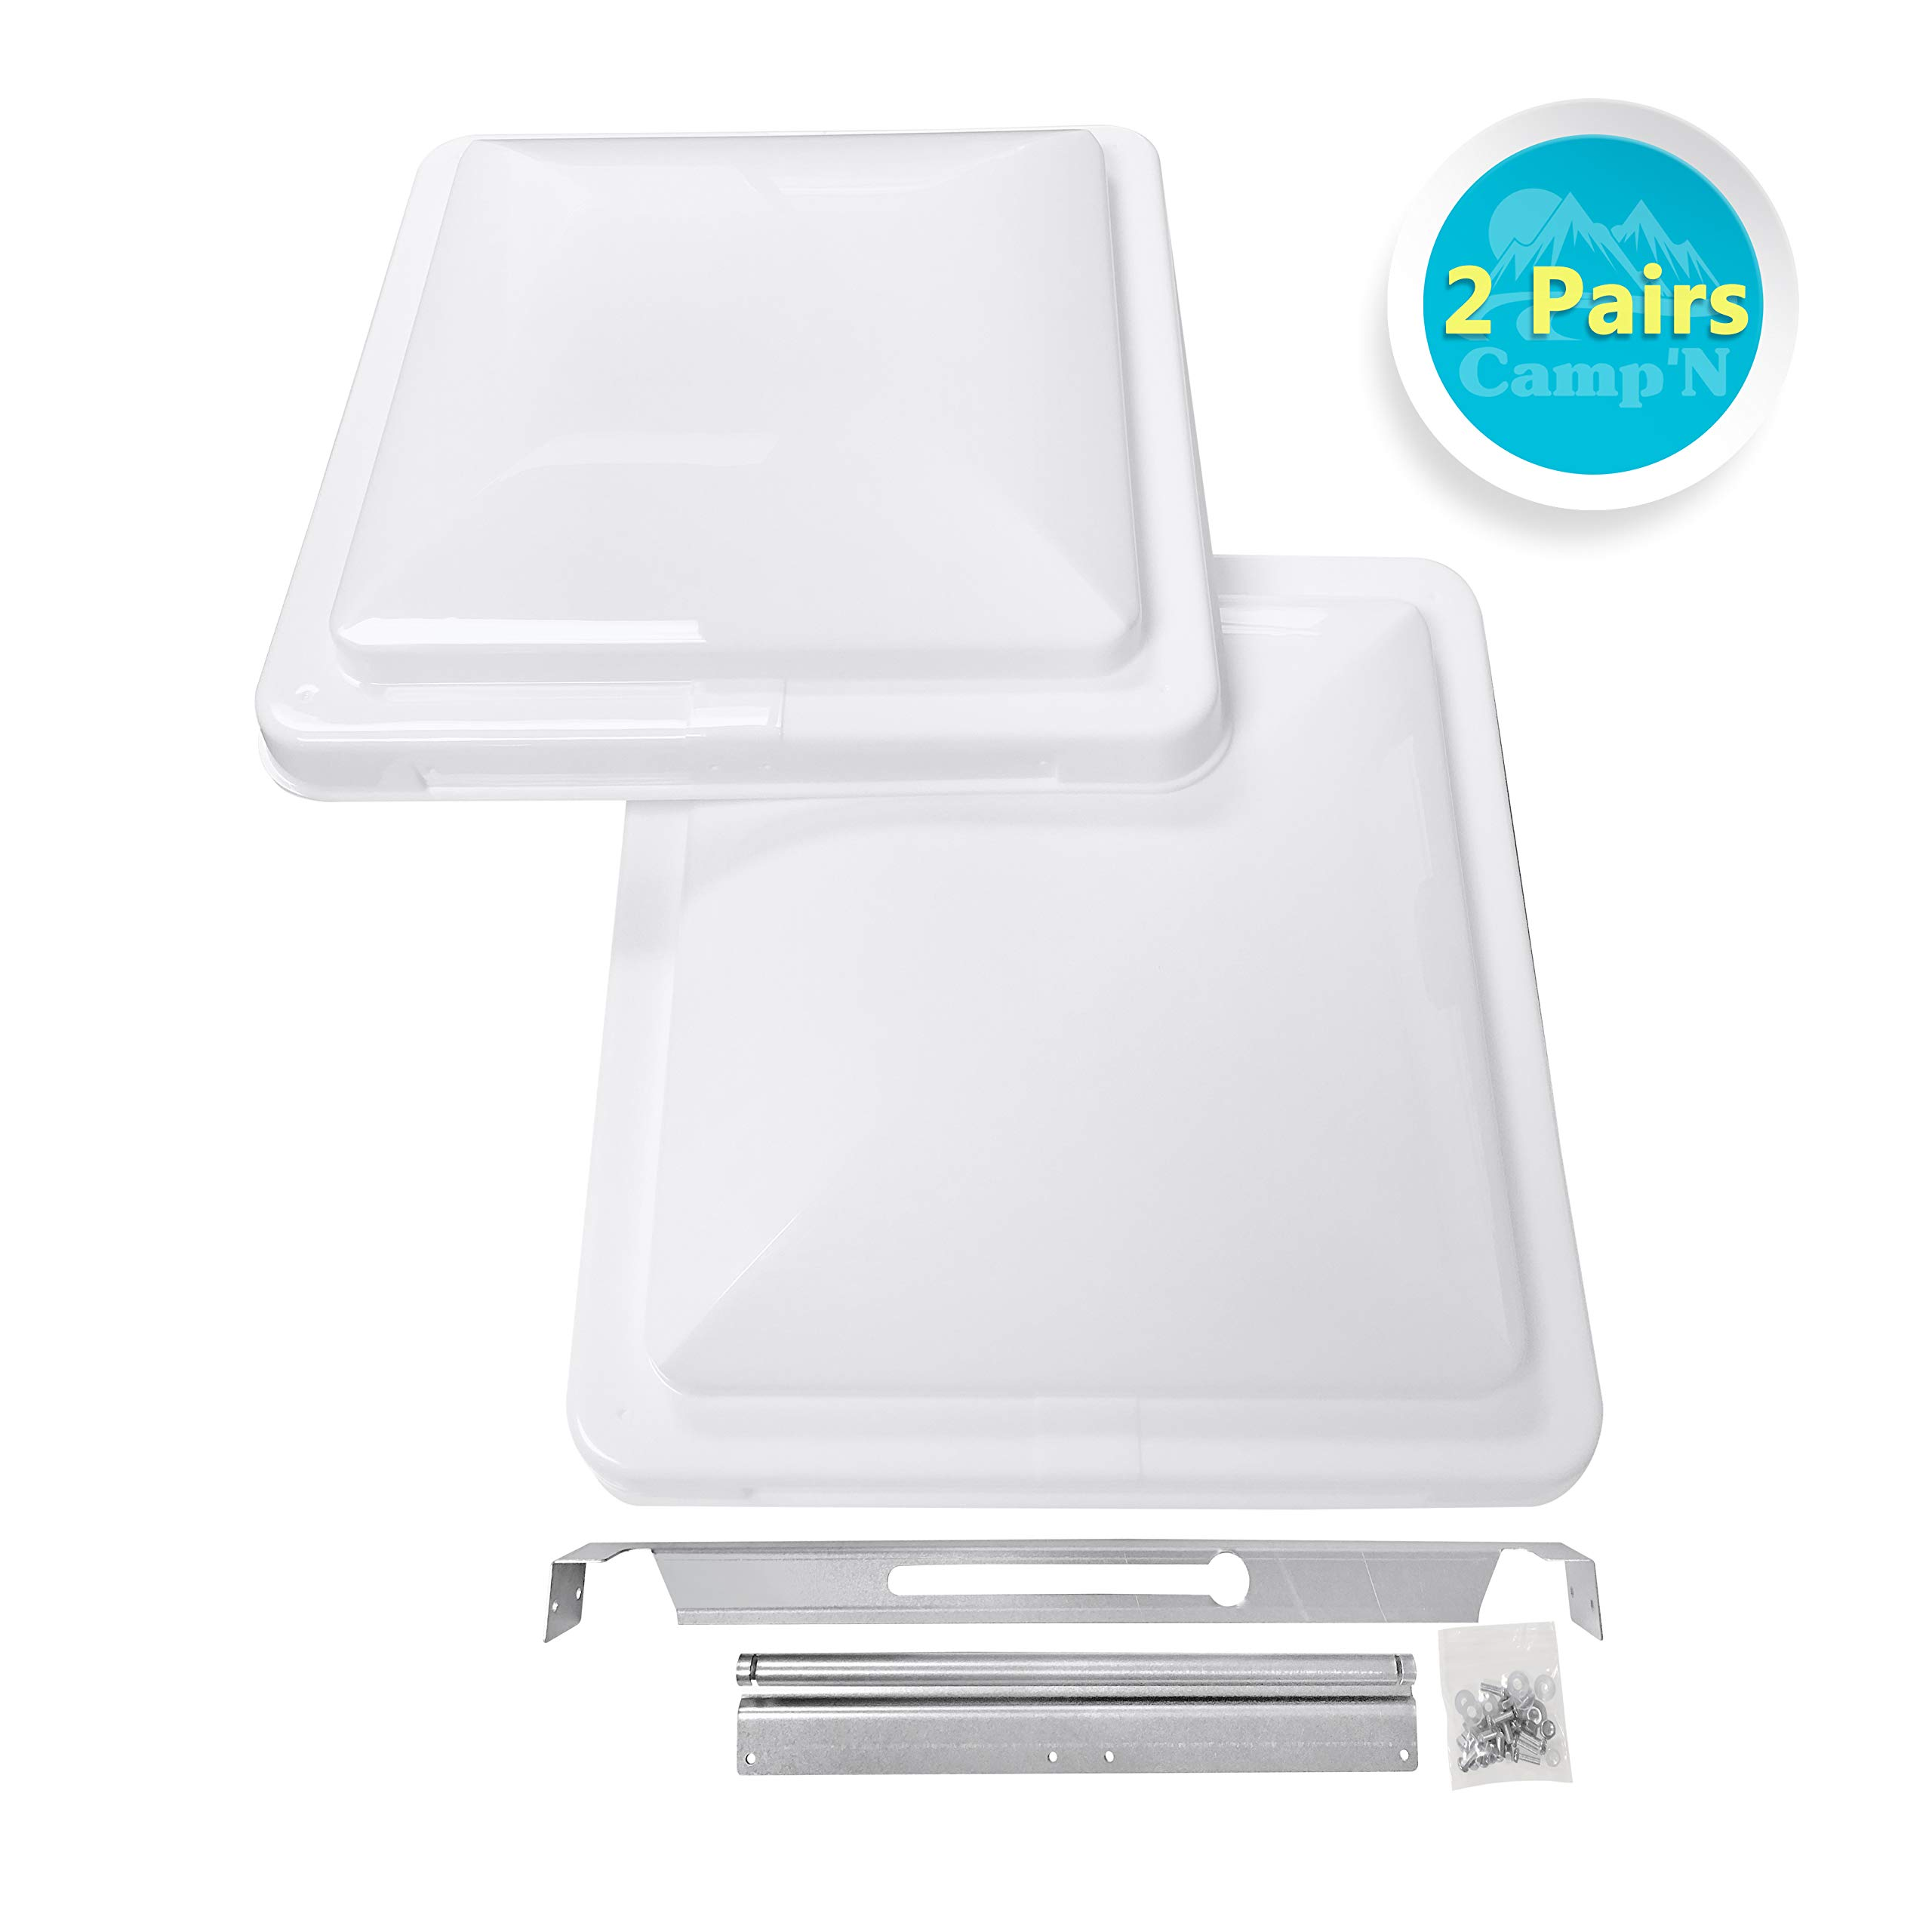 Camp'N 14'' Universal RV, Trailer, Camper, Motorhome Roof Vent Cover - Vent Lid Replacement (White 2 Pack)